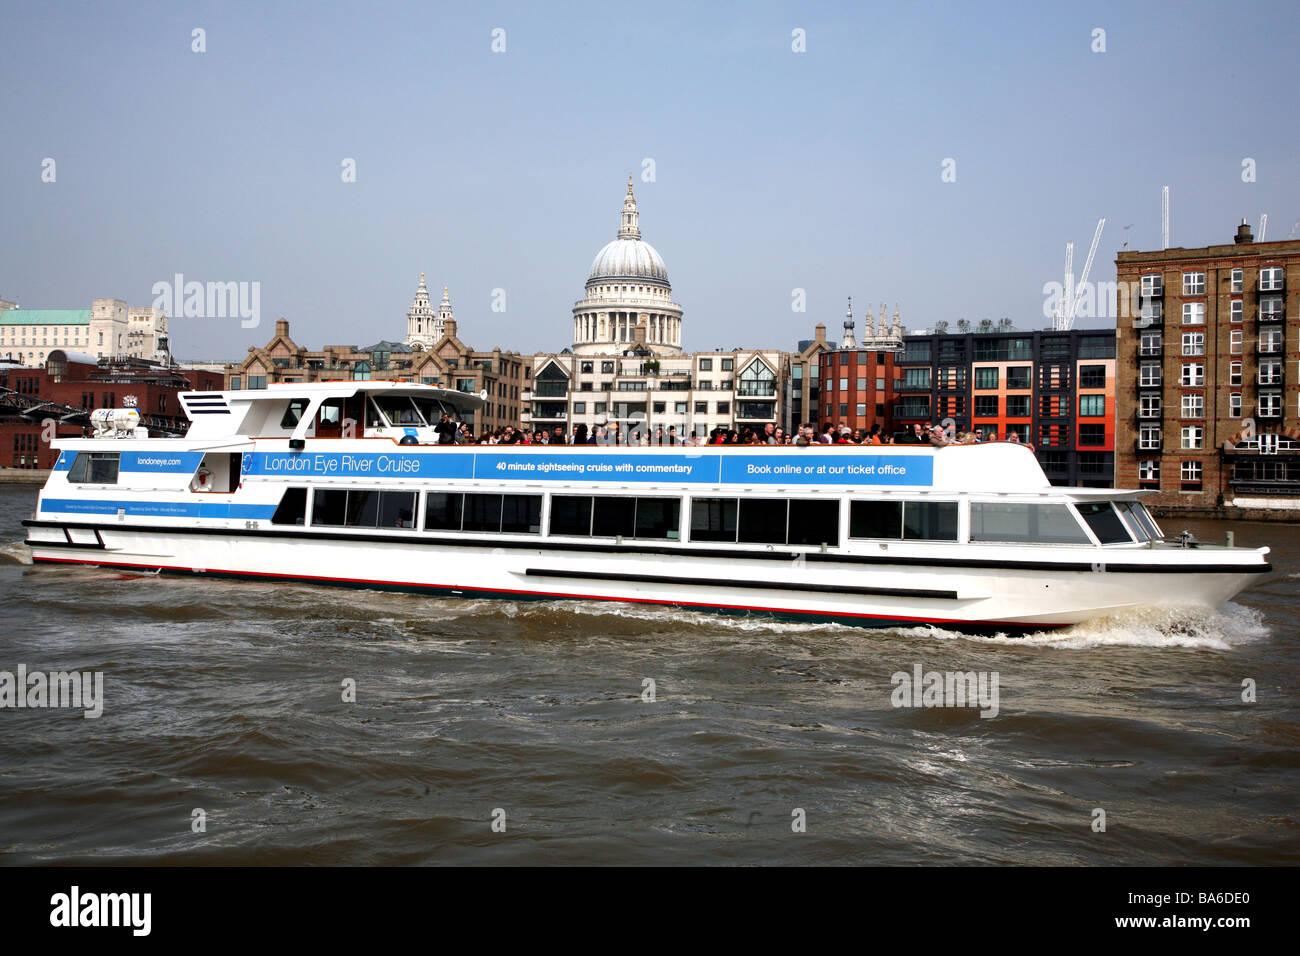 London Eye River Cruise Boat On Thames Stock Photo Royalty Free Image 23499